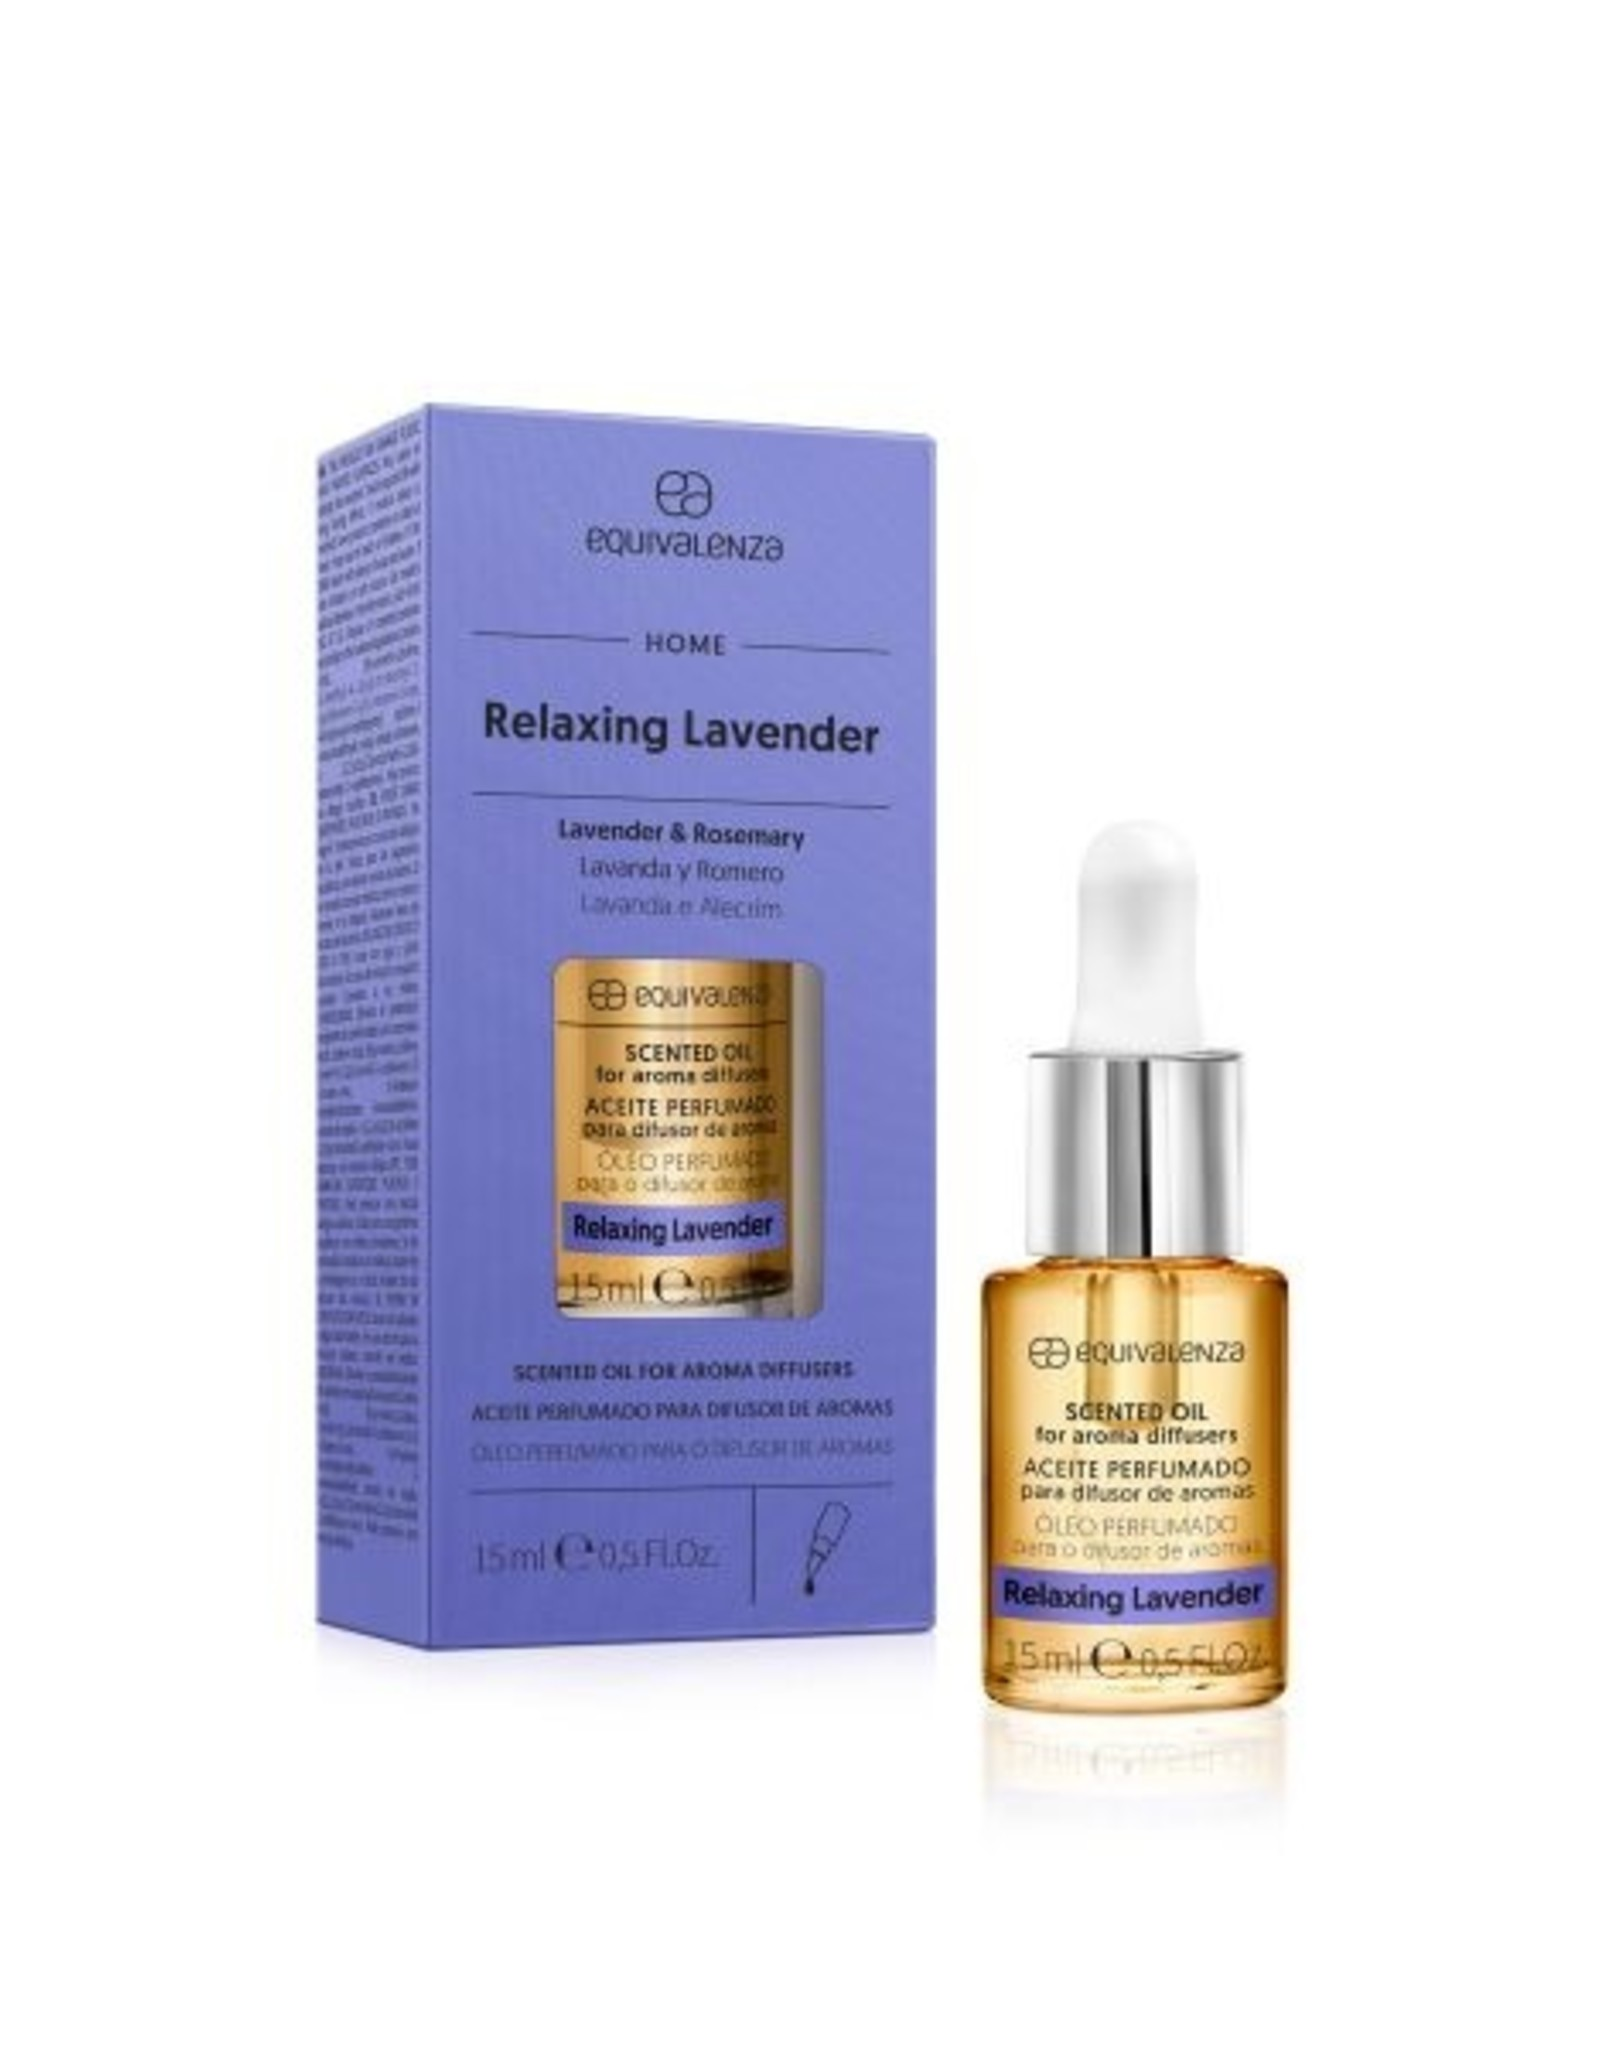 Equivalenza Water-Soluble Scented Oil – Relaxing Lavender (lavender and rosemary)